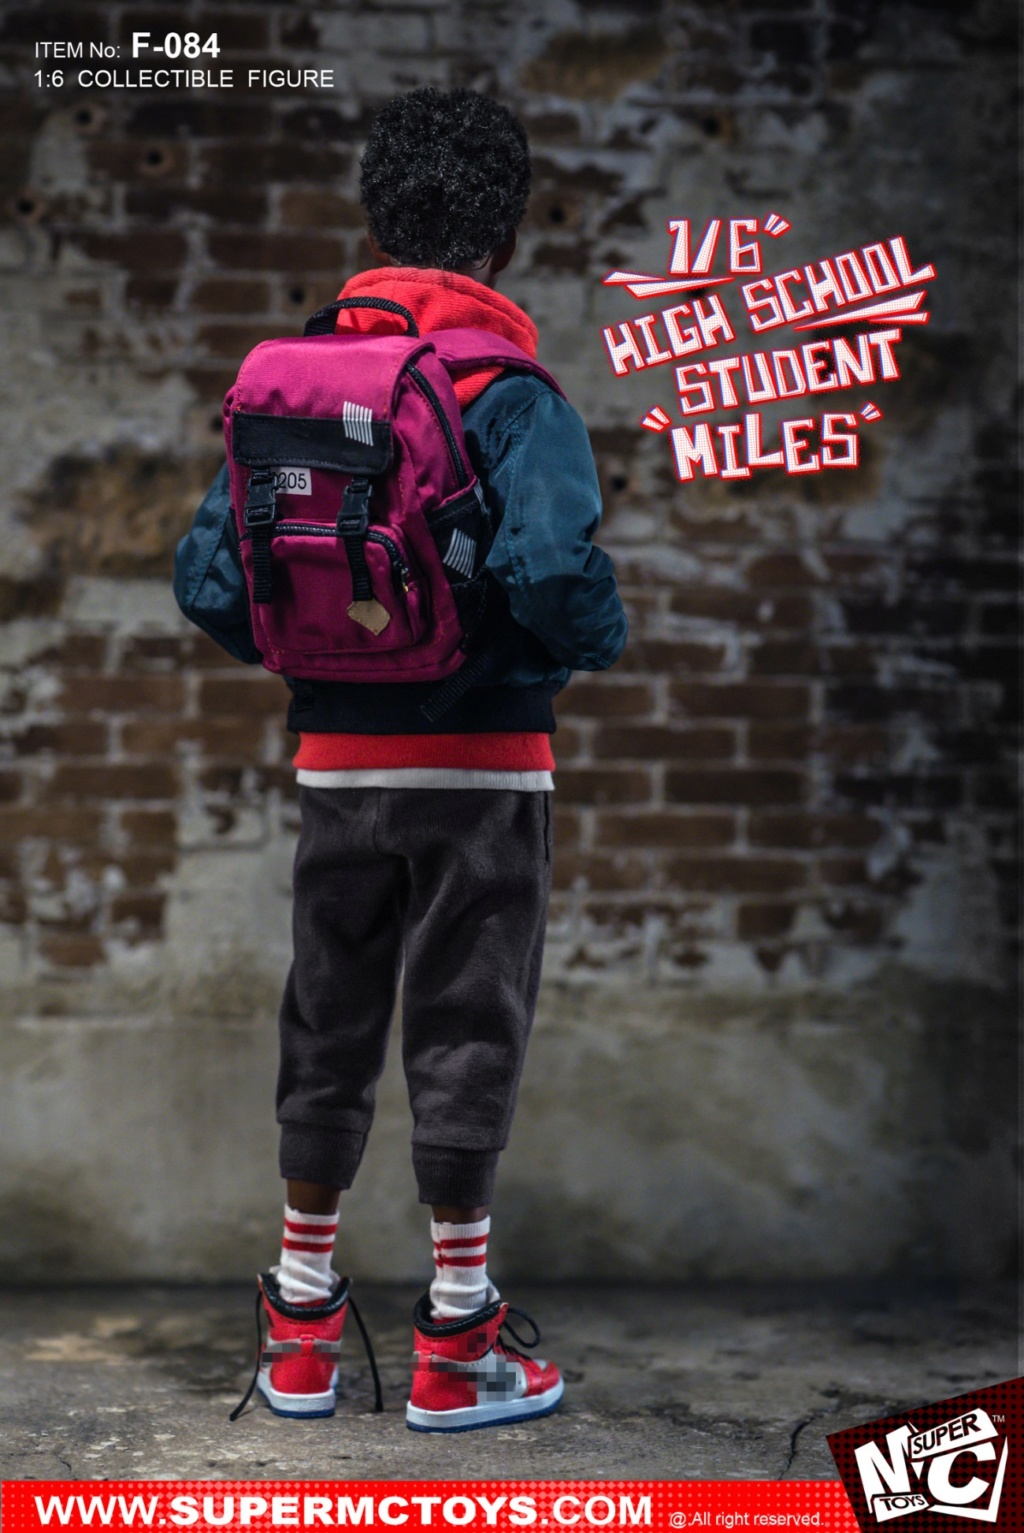 male - NEW PRODUCT: SUPERMCTOYS: 1/6 High School Students - Little Black Miles Miles Movable F-084# 19372410